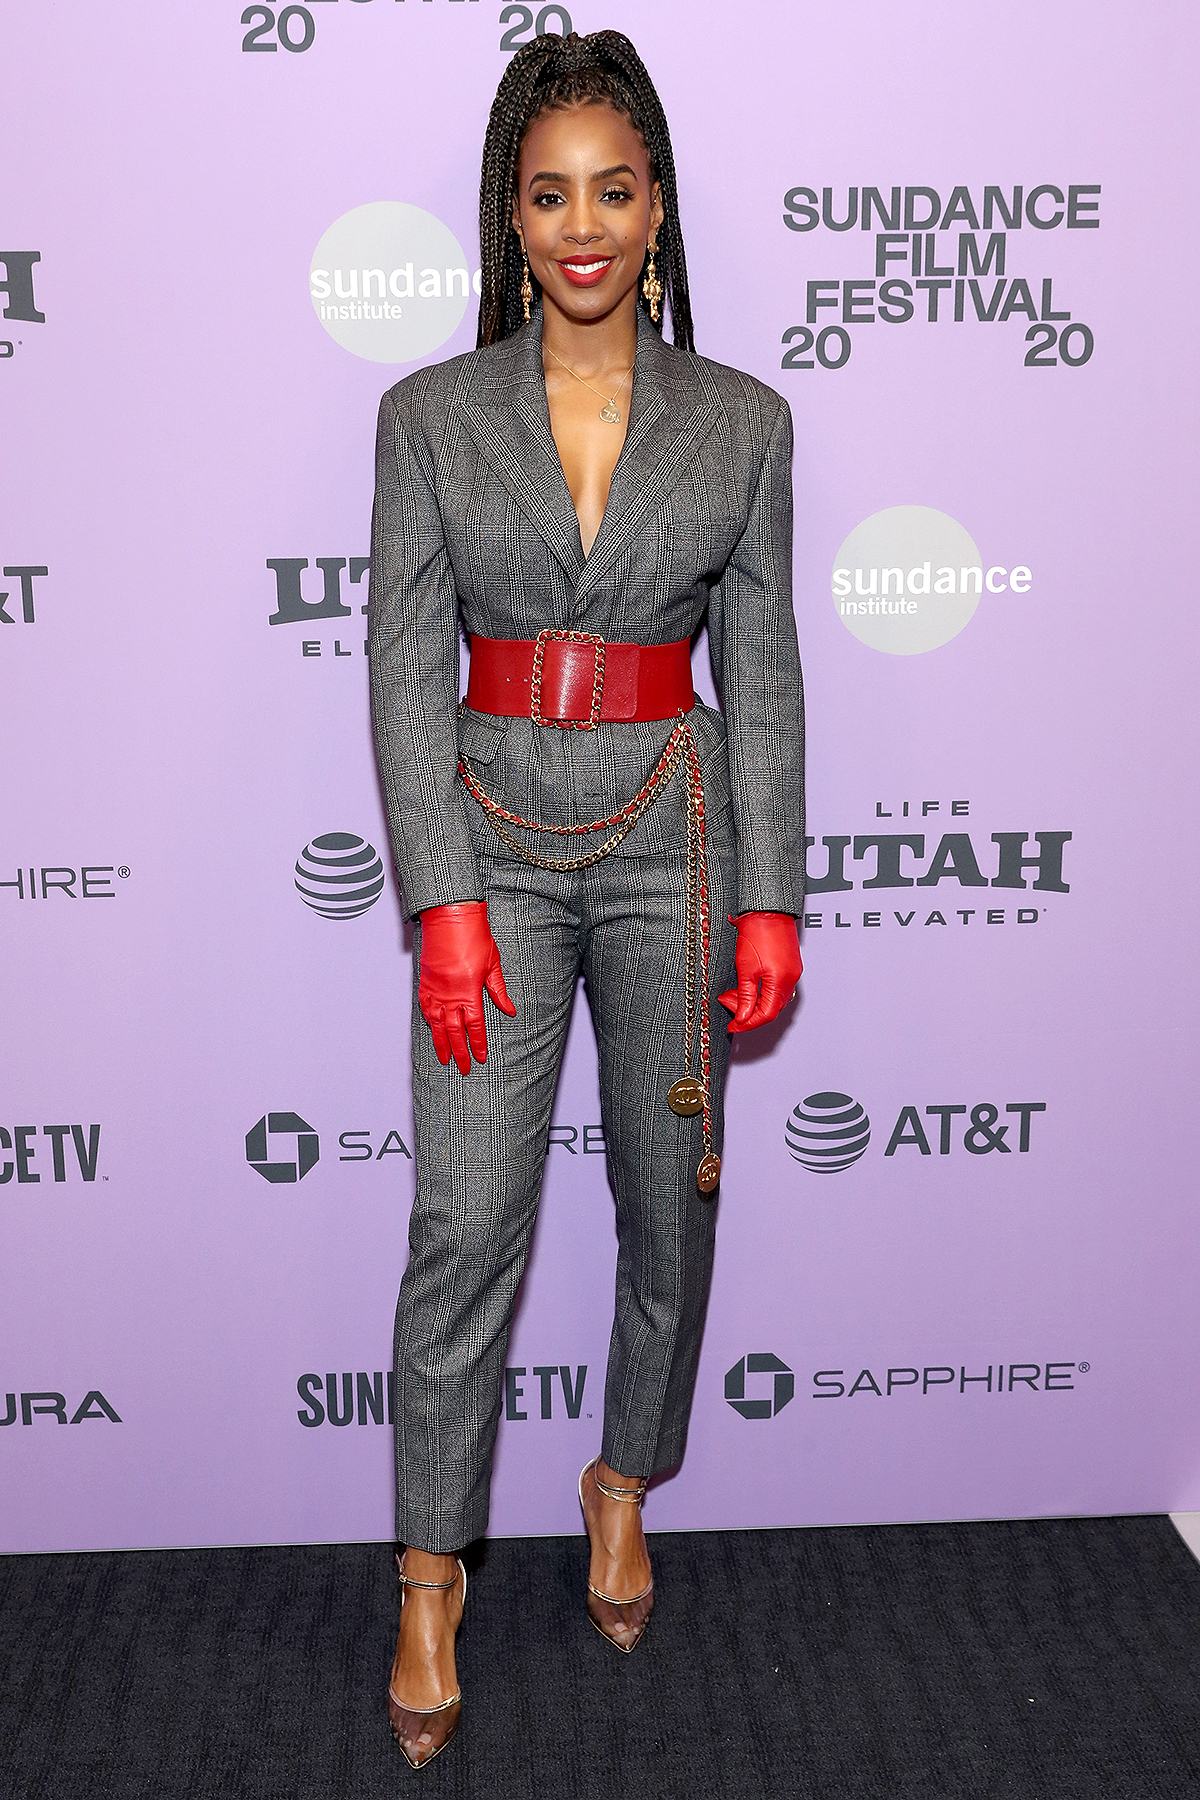 """Kelly Rowland attends the """"Bad Hair"""" premiere during the 2020 Sundance Film Festival at The Ray on January 23, 2020 in Park City, Utah."""